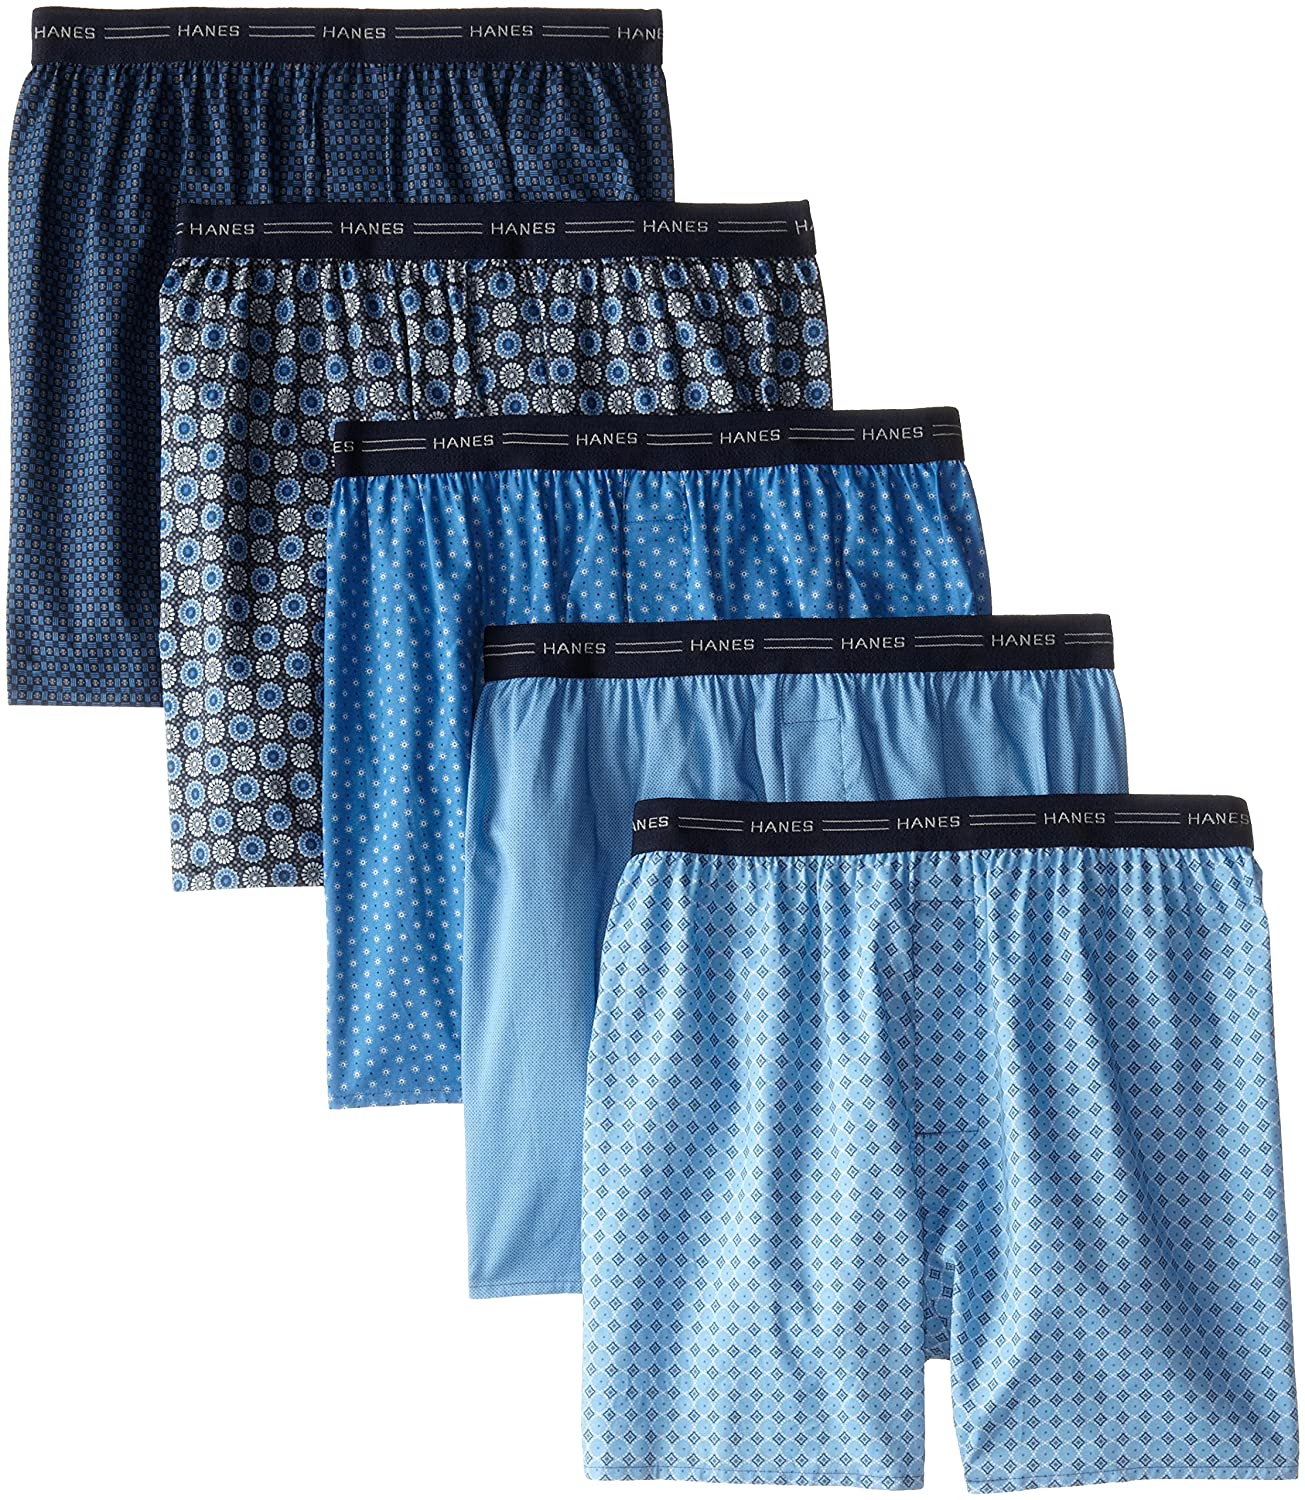 Hanes Red Label Men's 5-Pack Printed Woven Exposed Waistband Boxers 832BX5